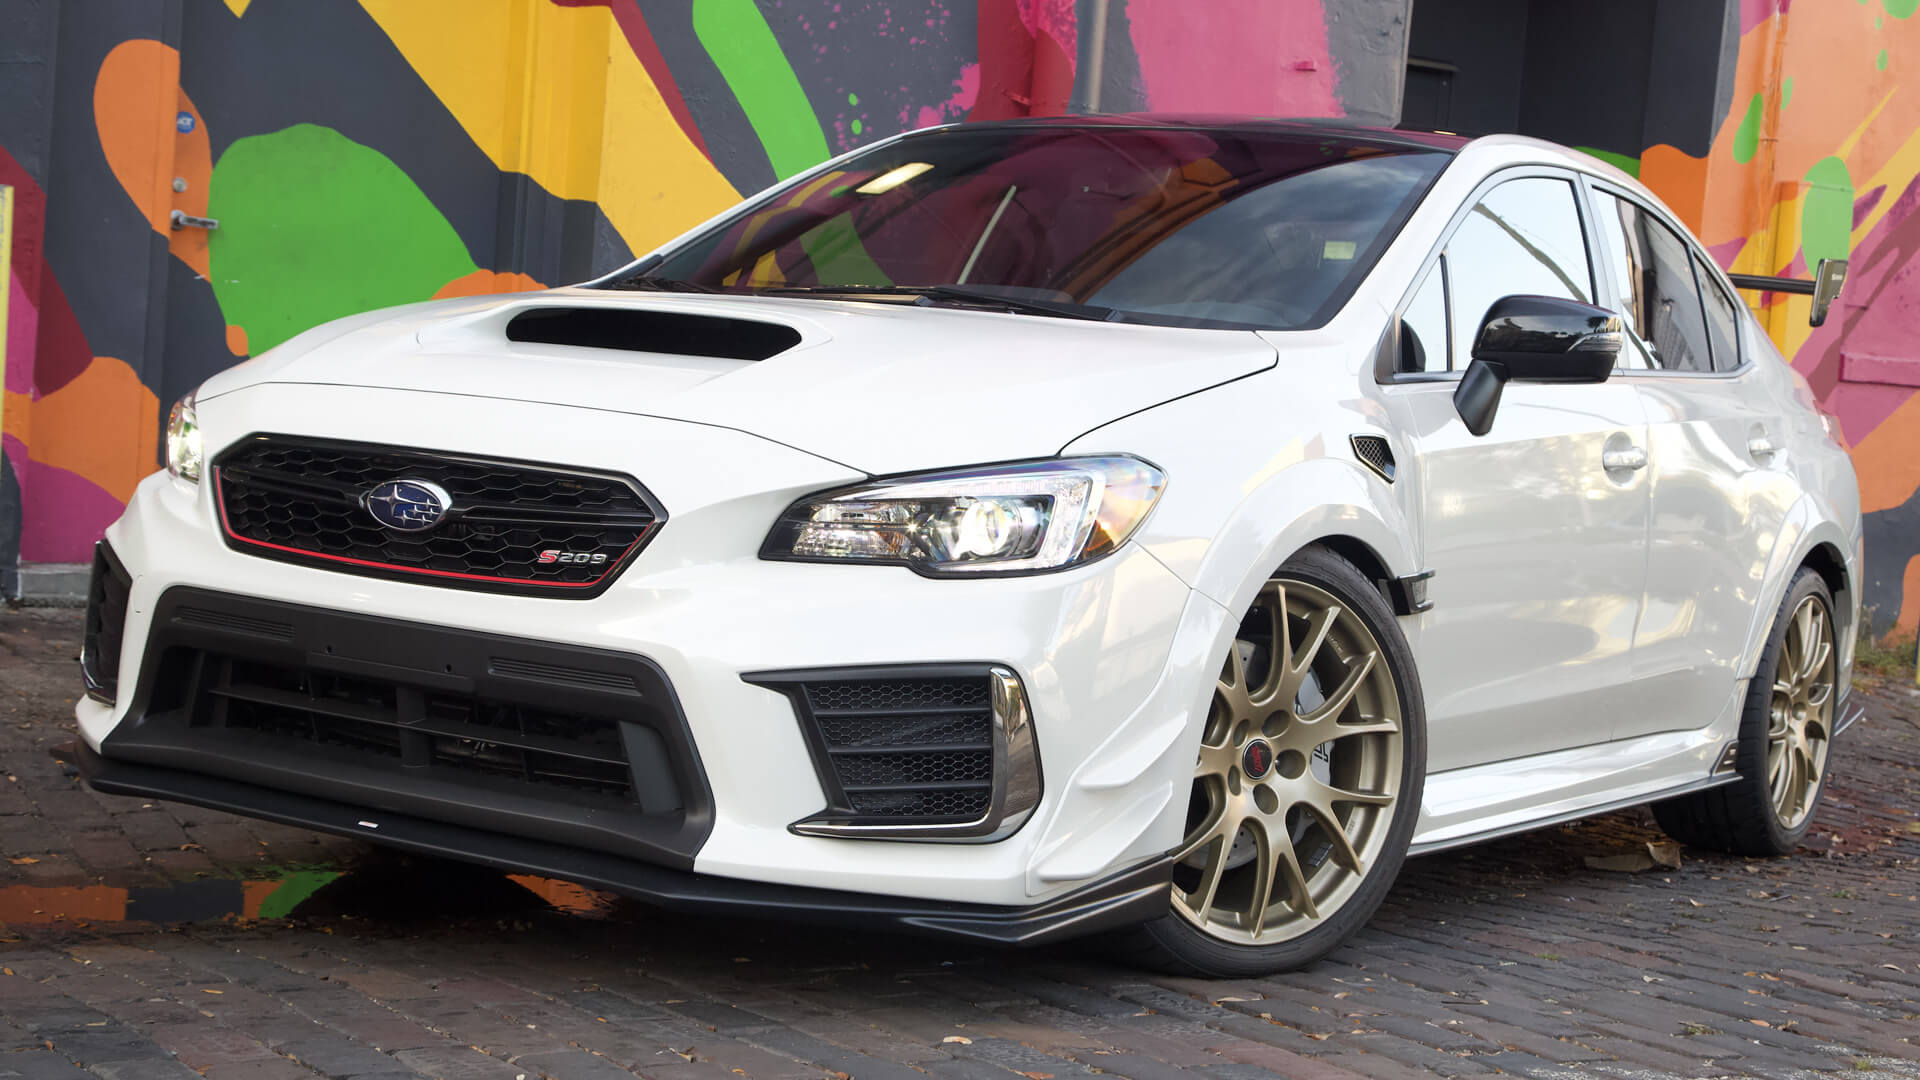 Win A Limited-Edition 2019 Subaru STI S209